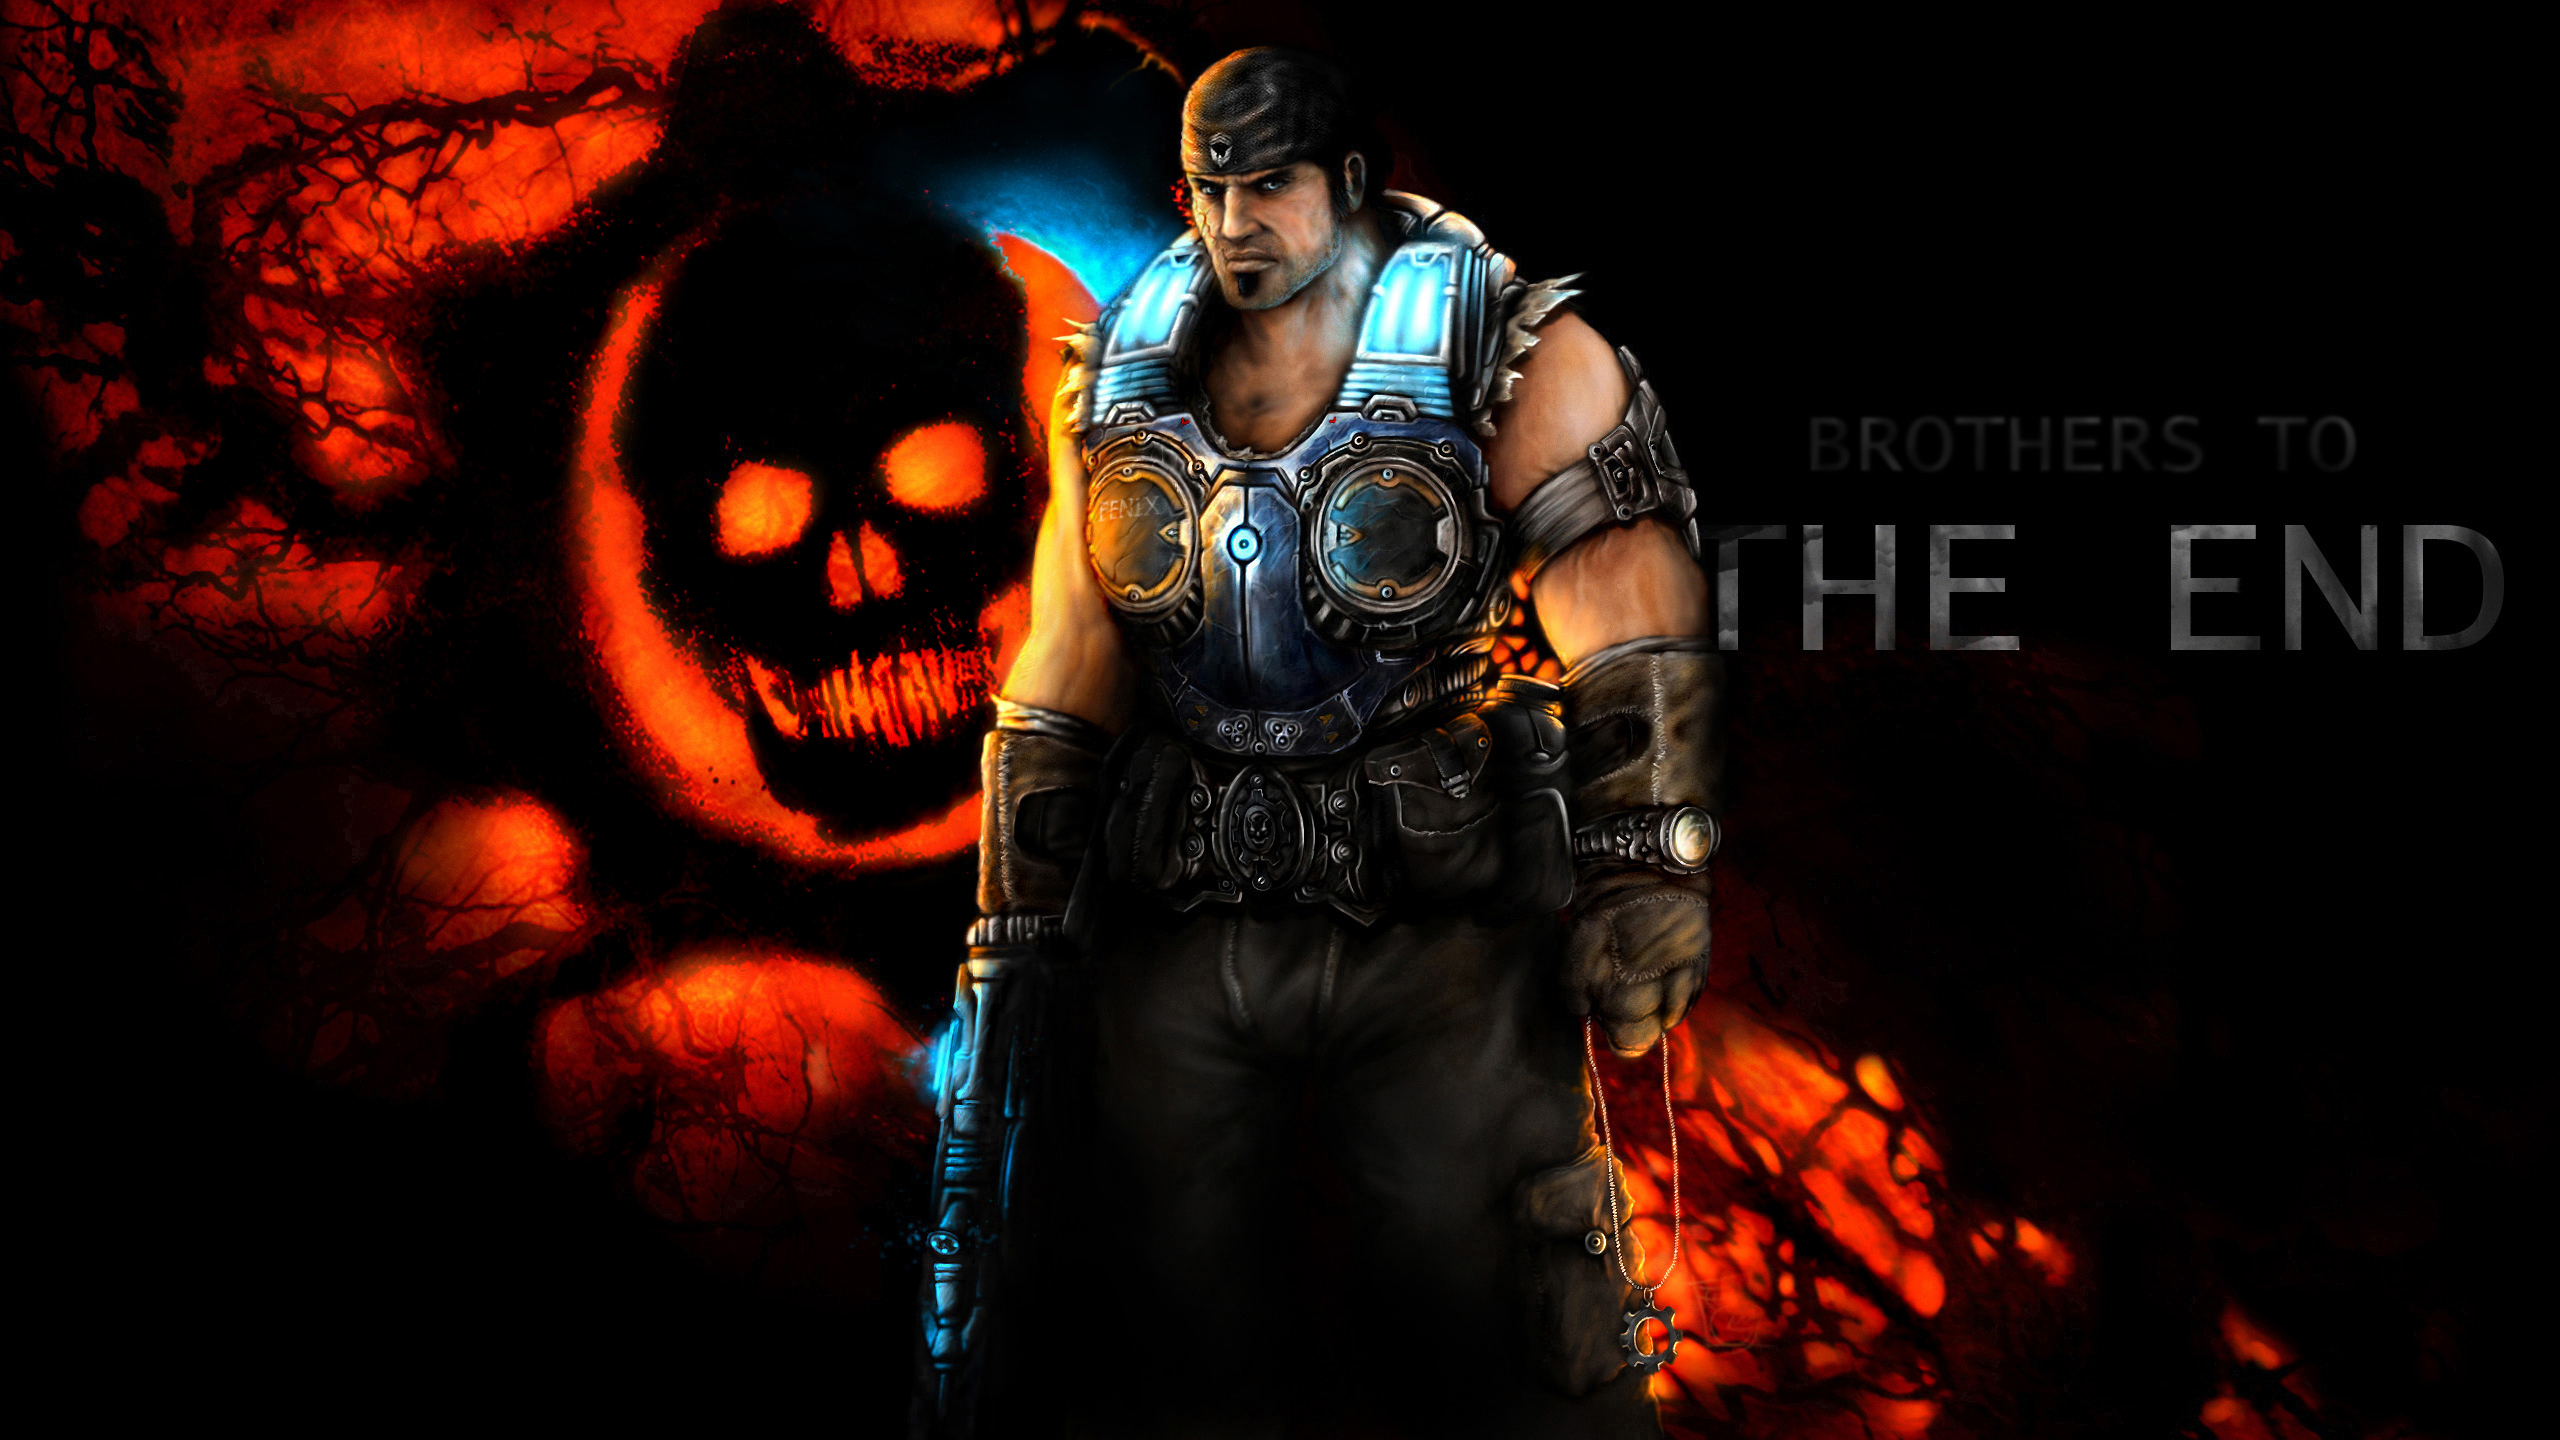 Gears Of War Hd Wallpaper 880145 Zerochan Anime Image Board